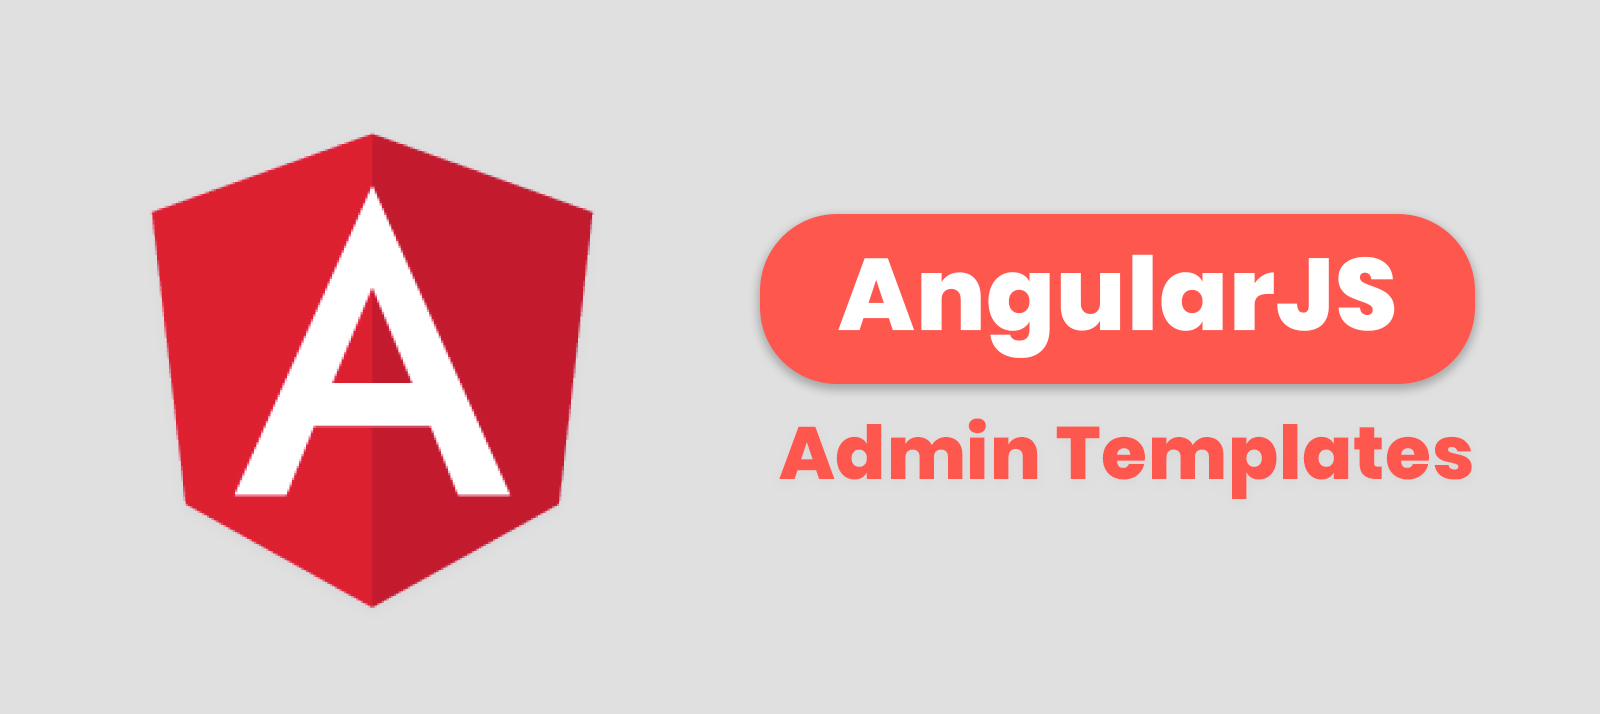 30+ Feature-Rich And Fully Responsive AngularJS Admin Templates You Should Try In 2020